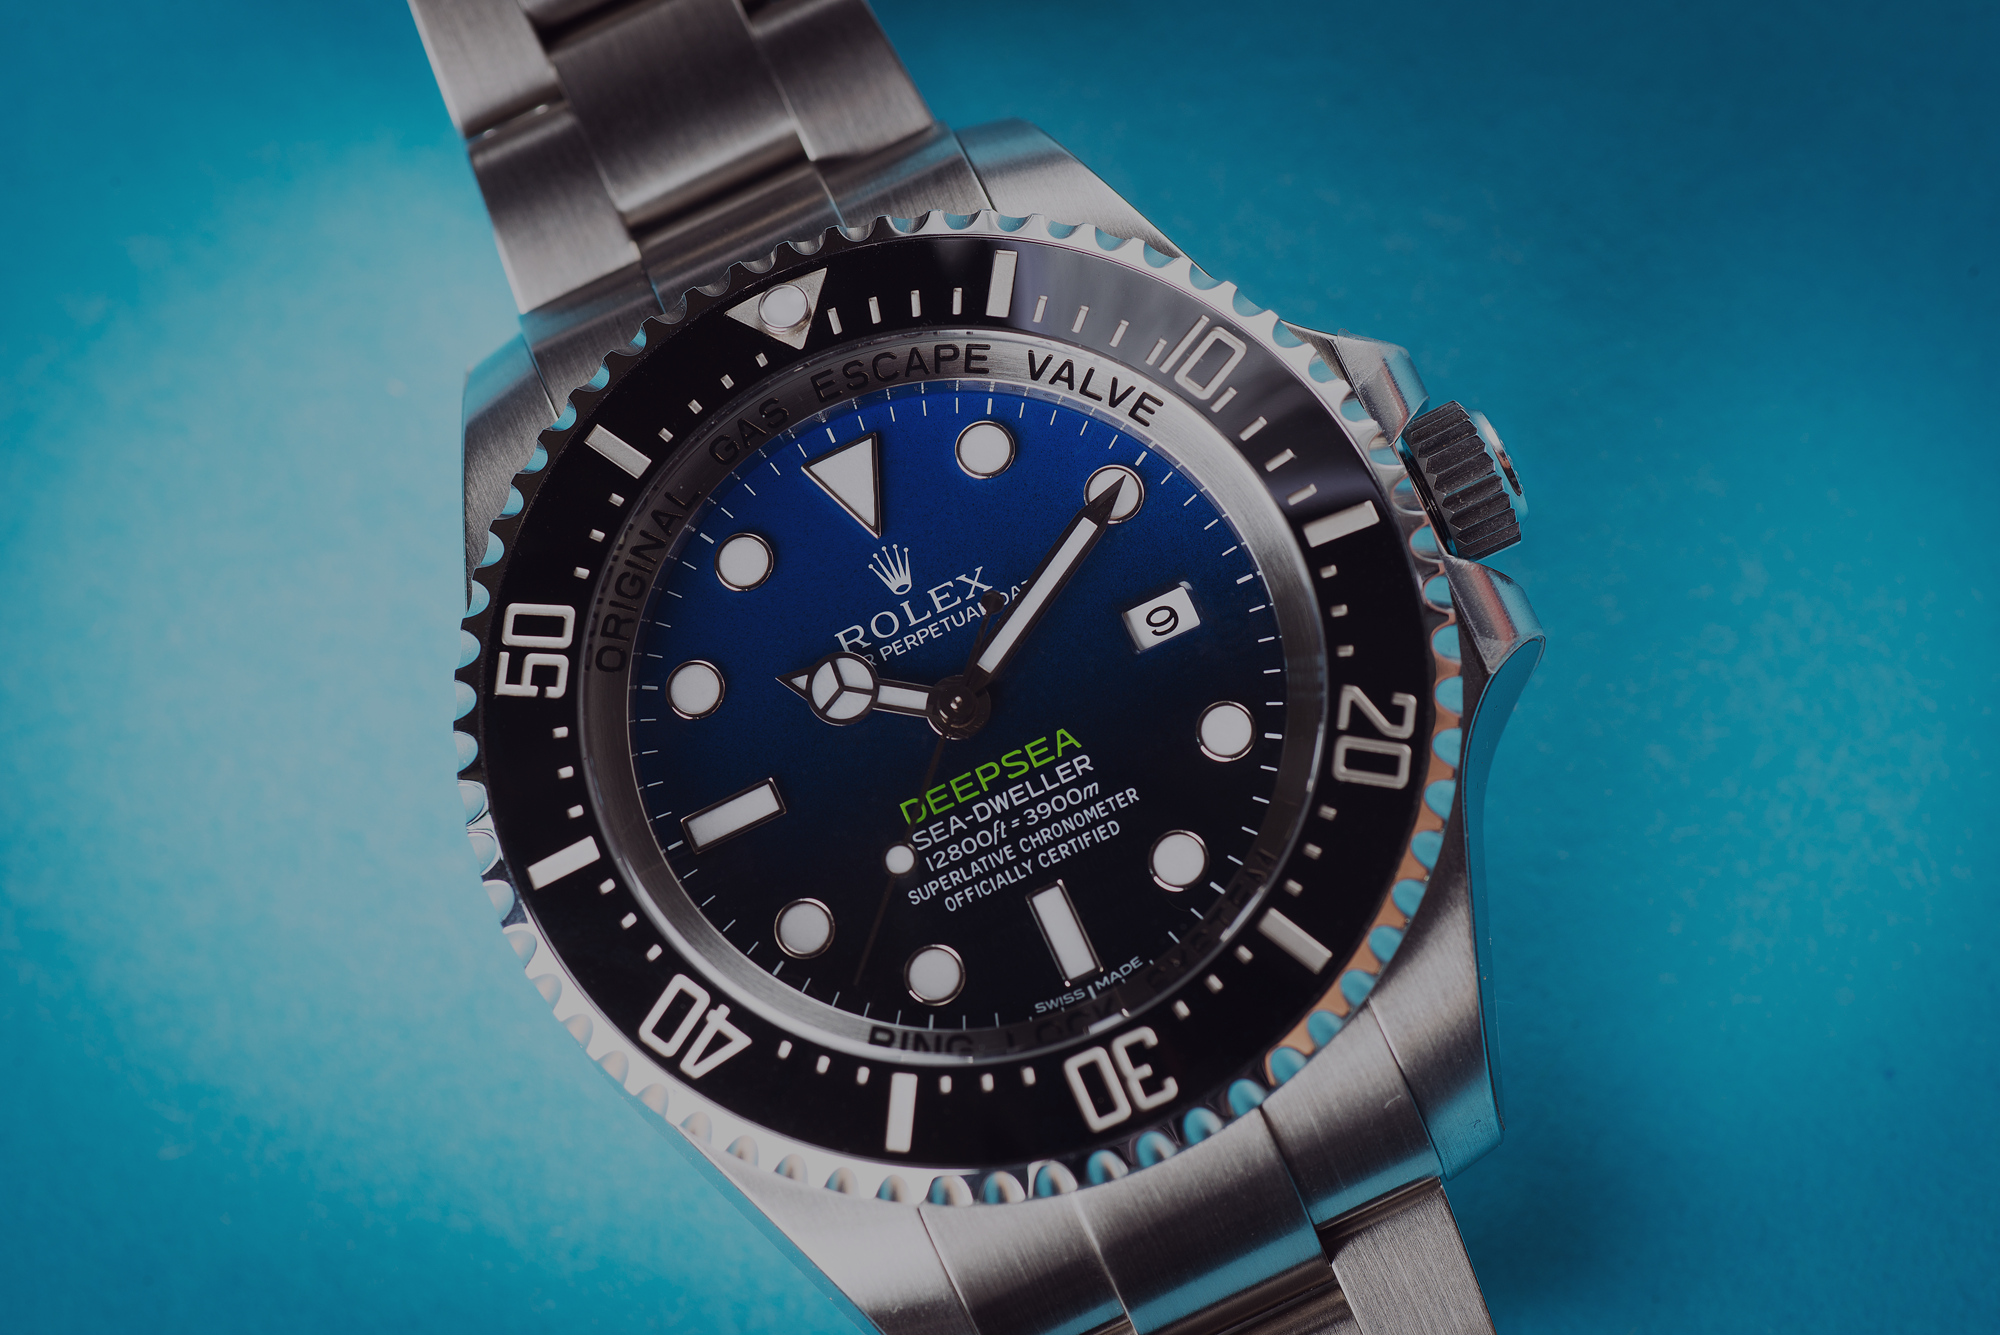 Rolex, Omega, IWC, and more – our new watches are in!